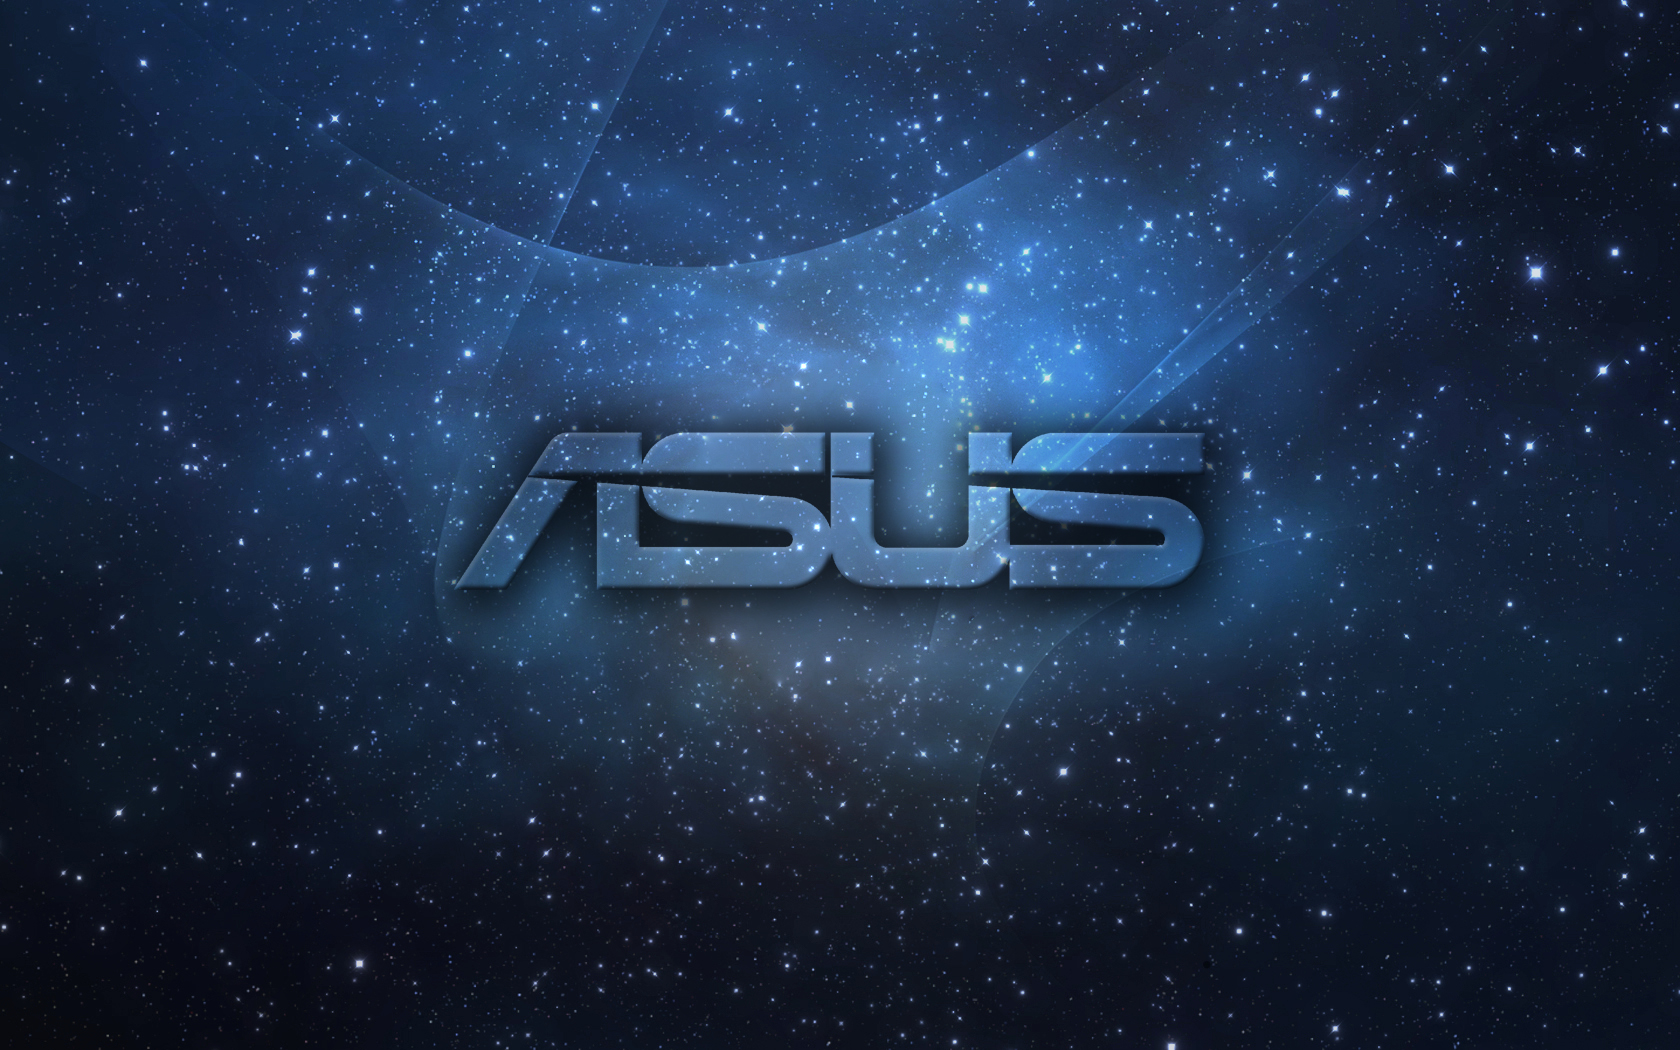 Asus Wallpaper Blue wallpaper wallpaper hd background desktop 1680x1050